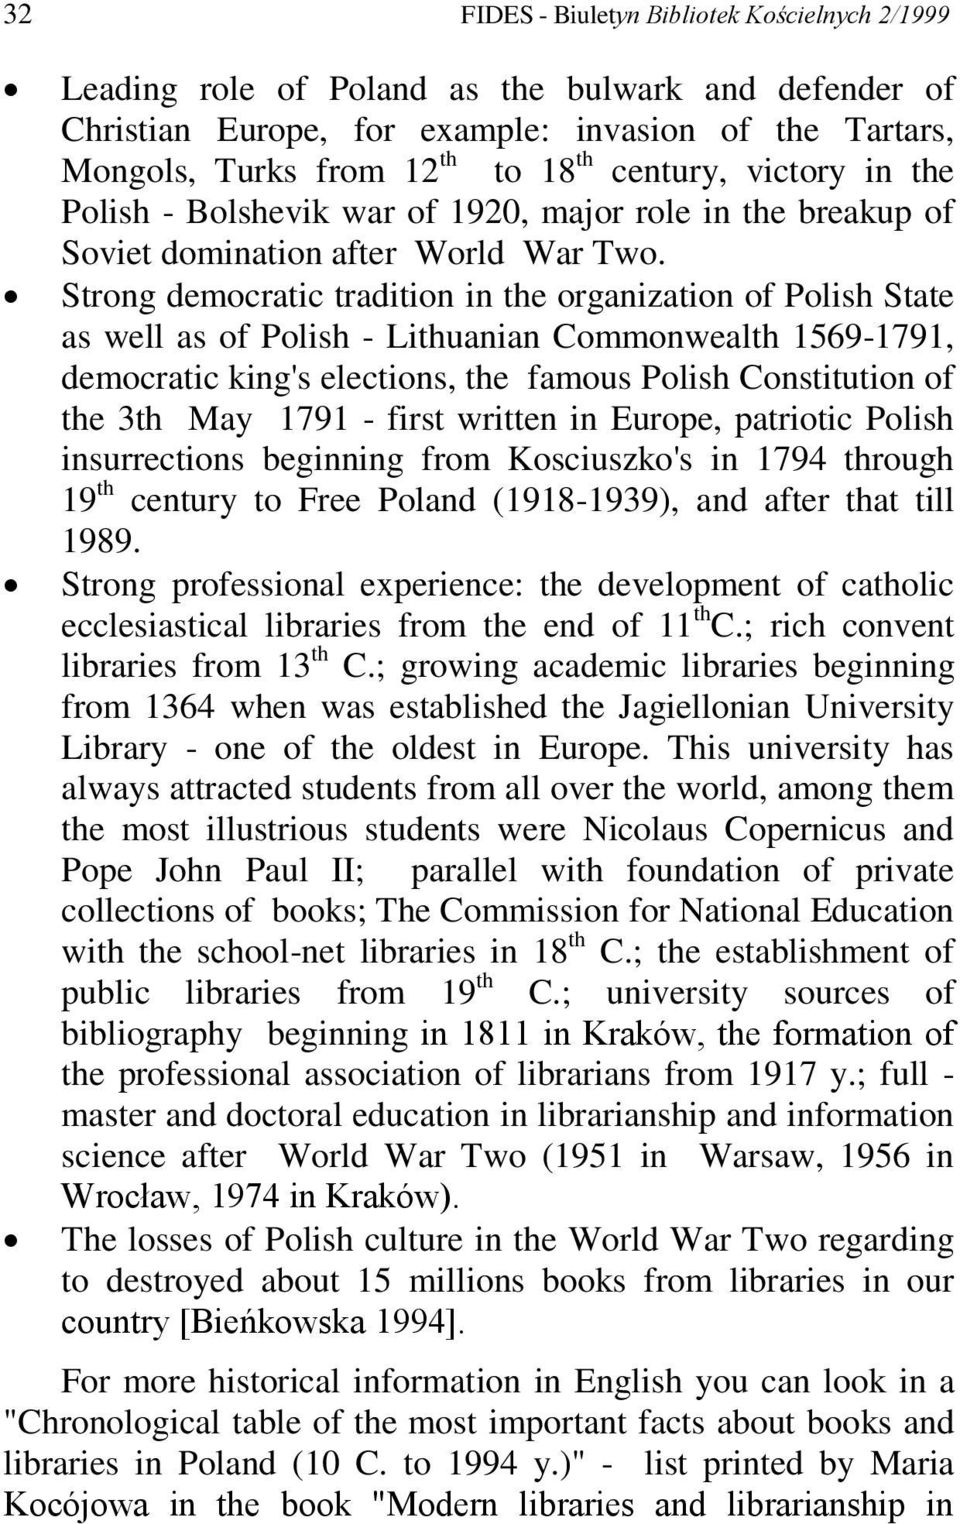 Strong democratic tradition in the organization of Polish State as well as of Polish - Lithuanian Commonwealth 1569-1791, democratic king's elections, the famous Polish Constitution of the 3th May